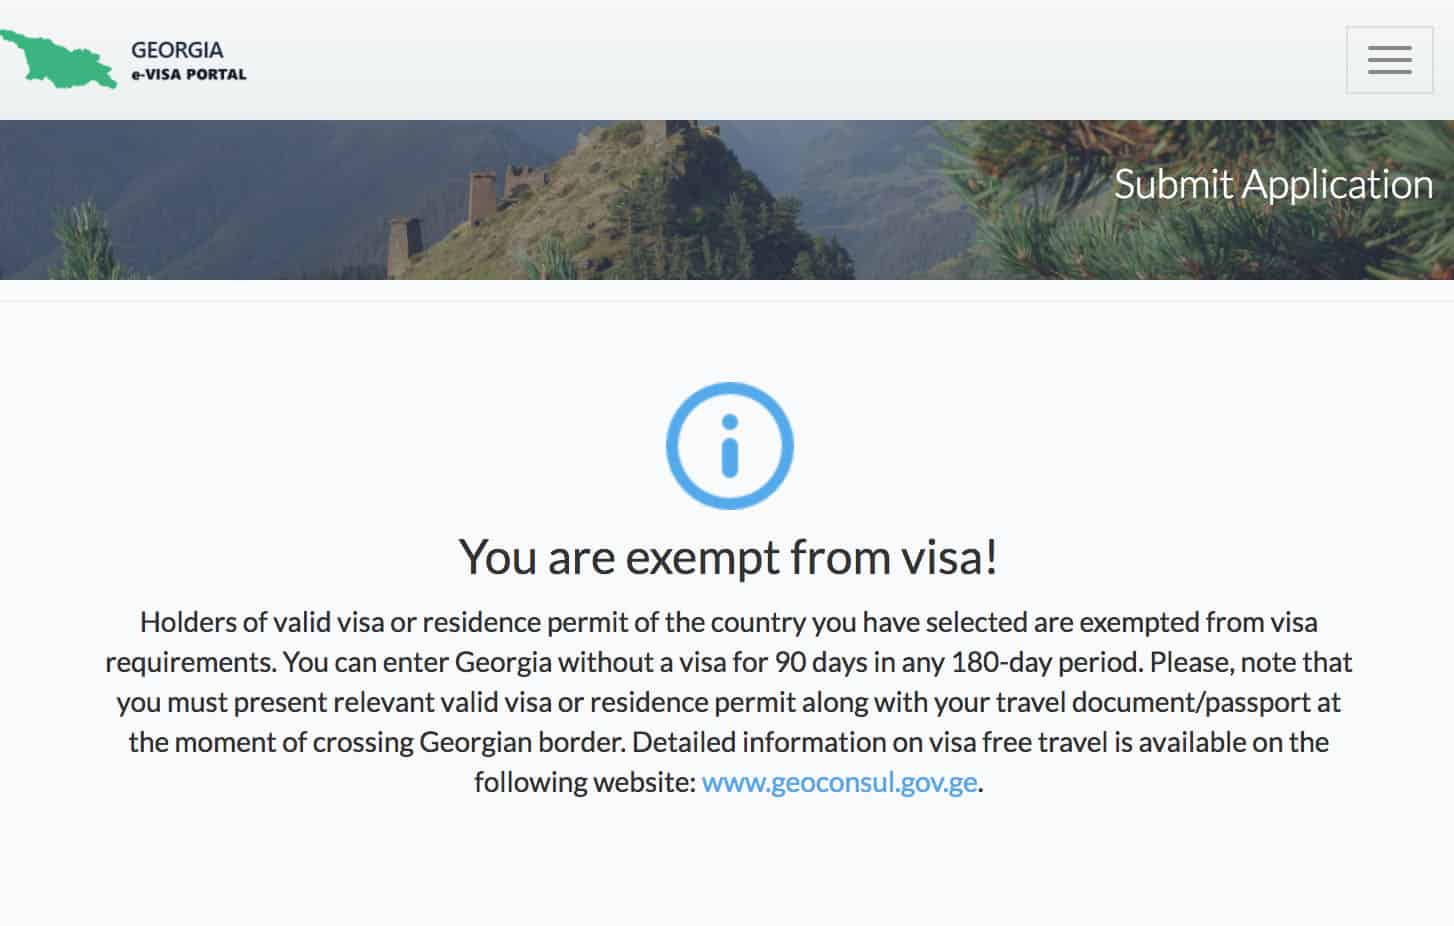 can i track the progress of my passport application